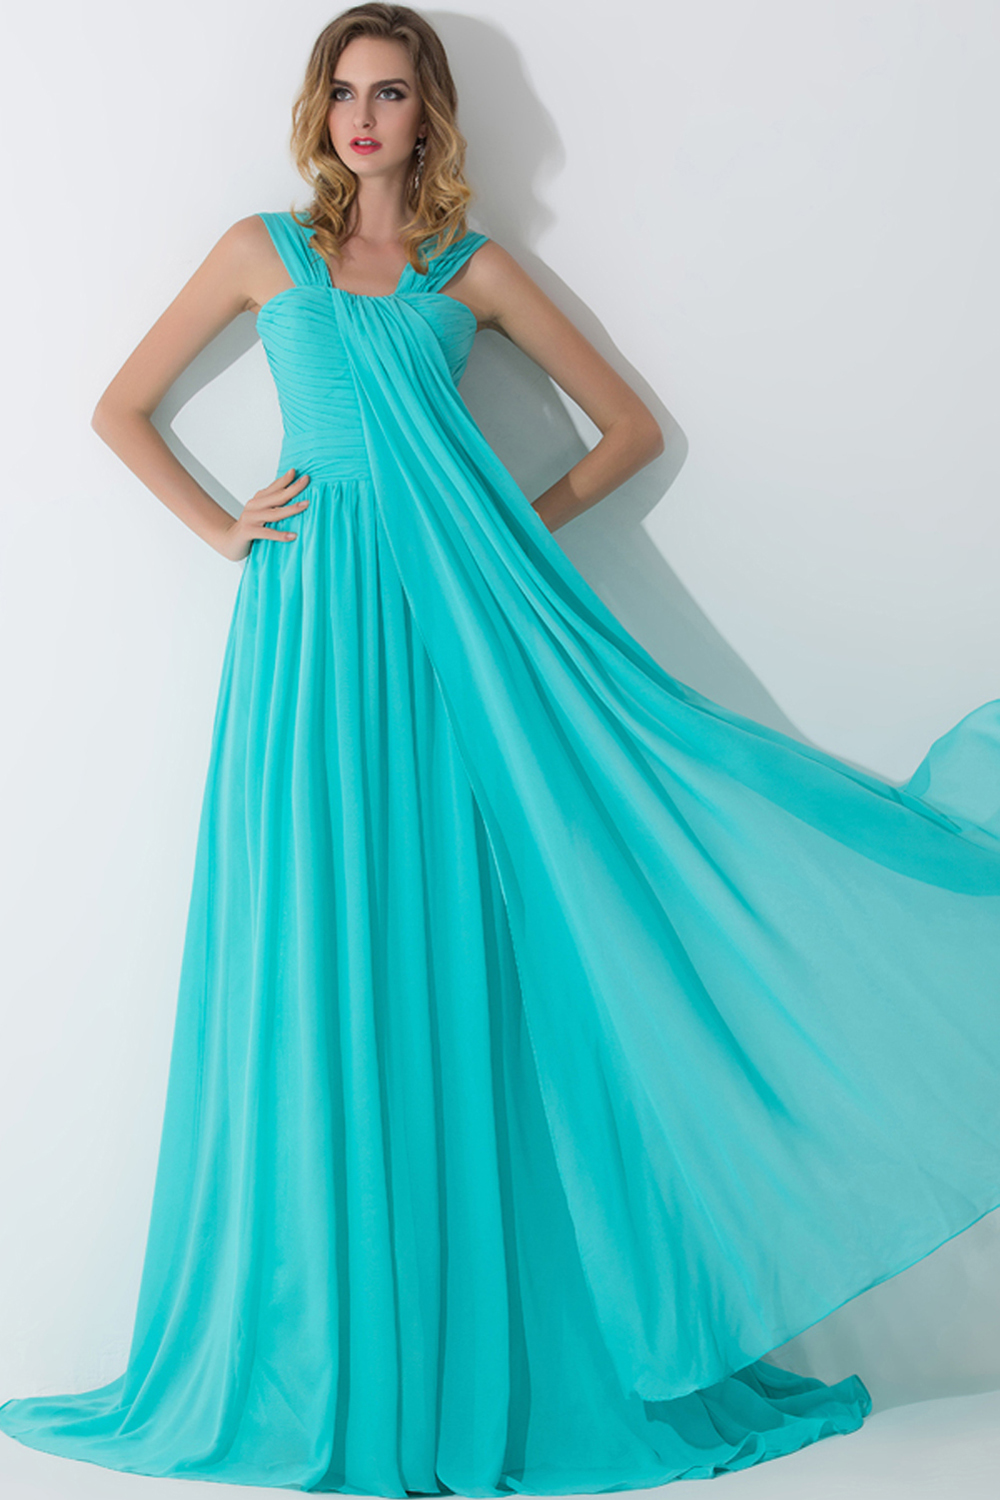 A-Line/Princess Square Neckline Floor Length Chiffon Bridesmaid Dress with Pleats